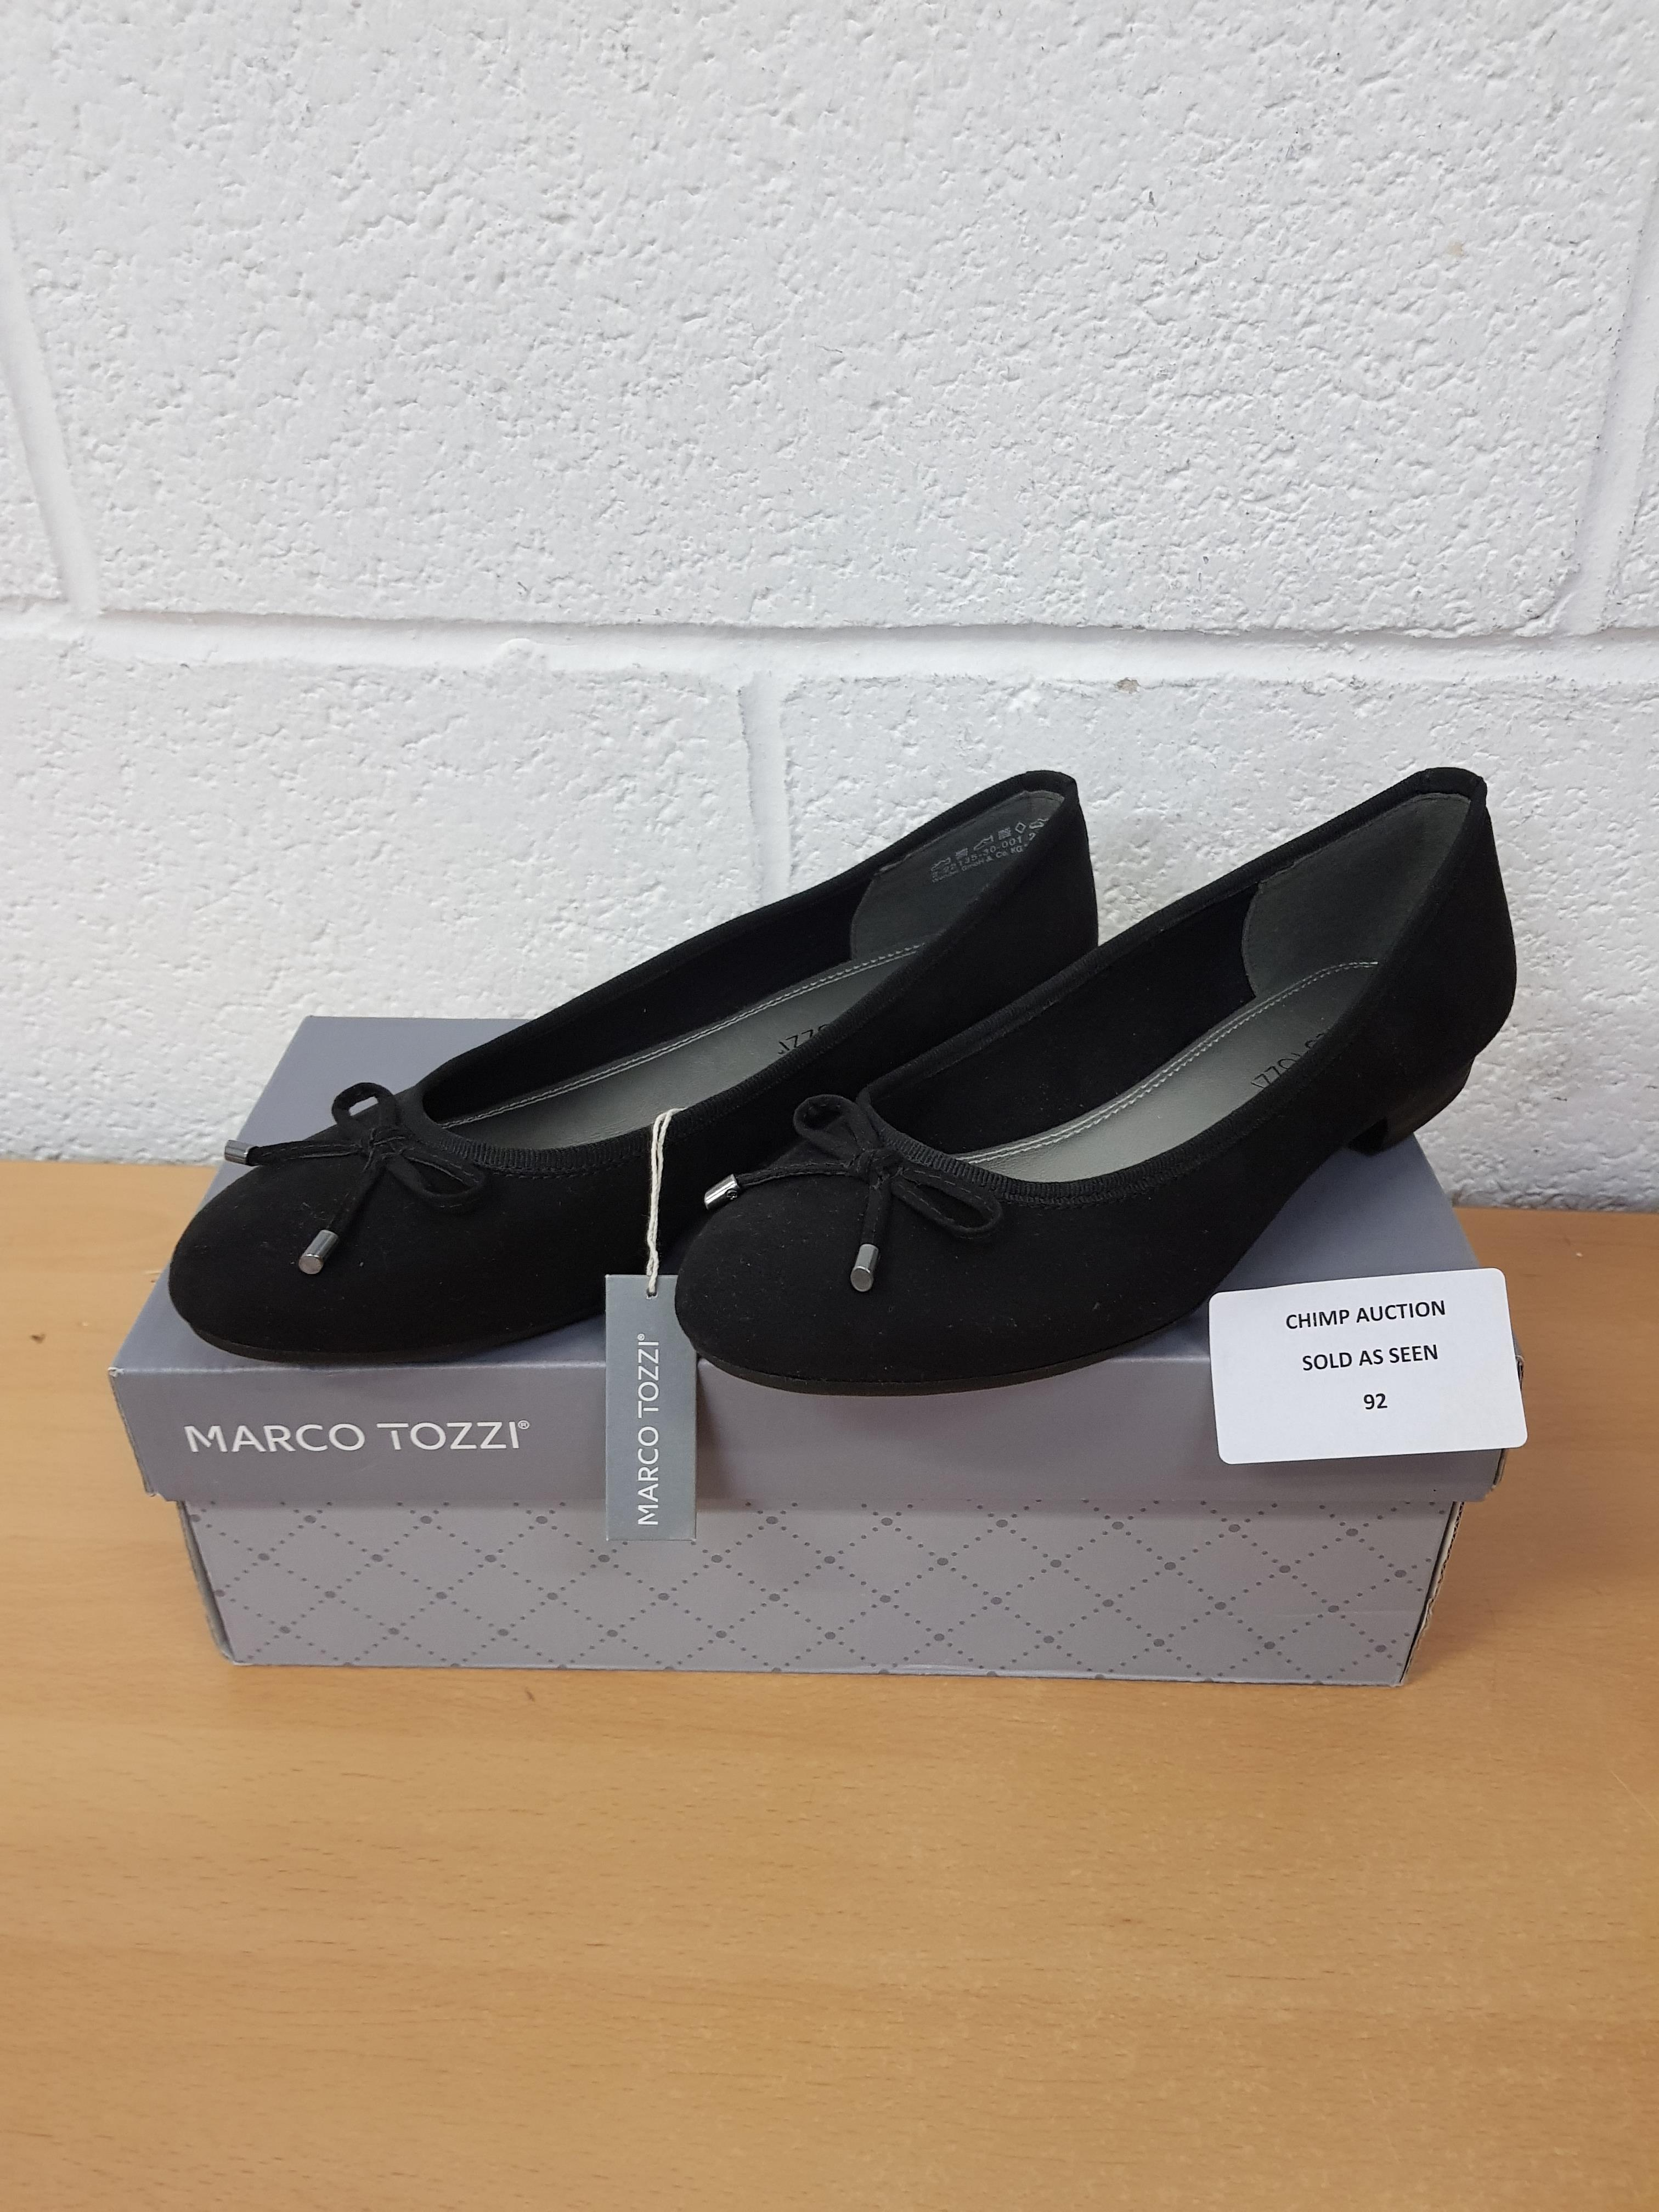 Lot 92 - Marco Tozzi ladies shoes EU 39